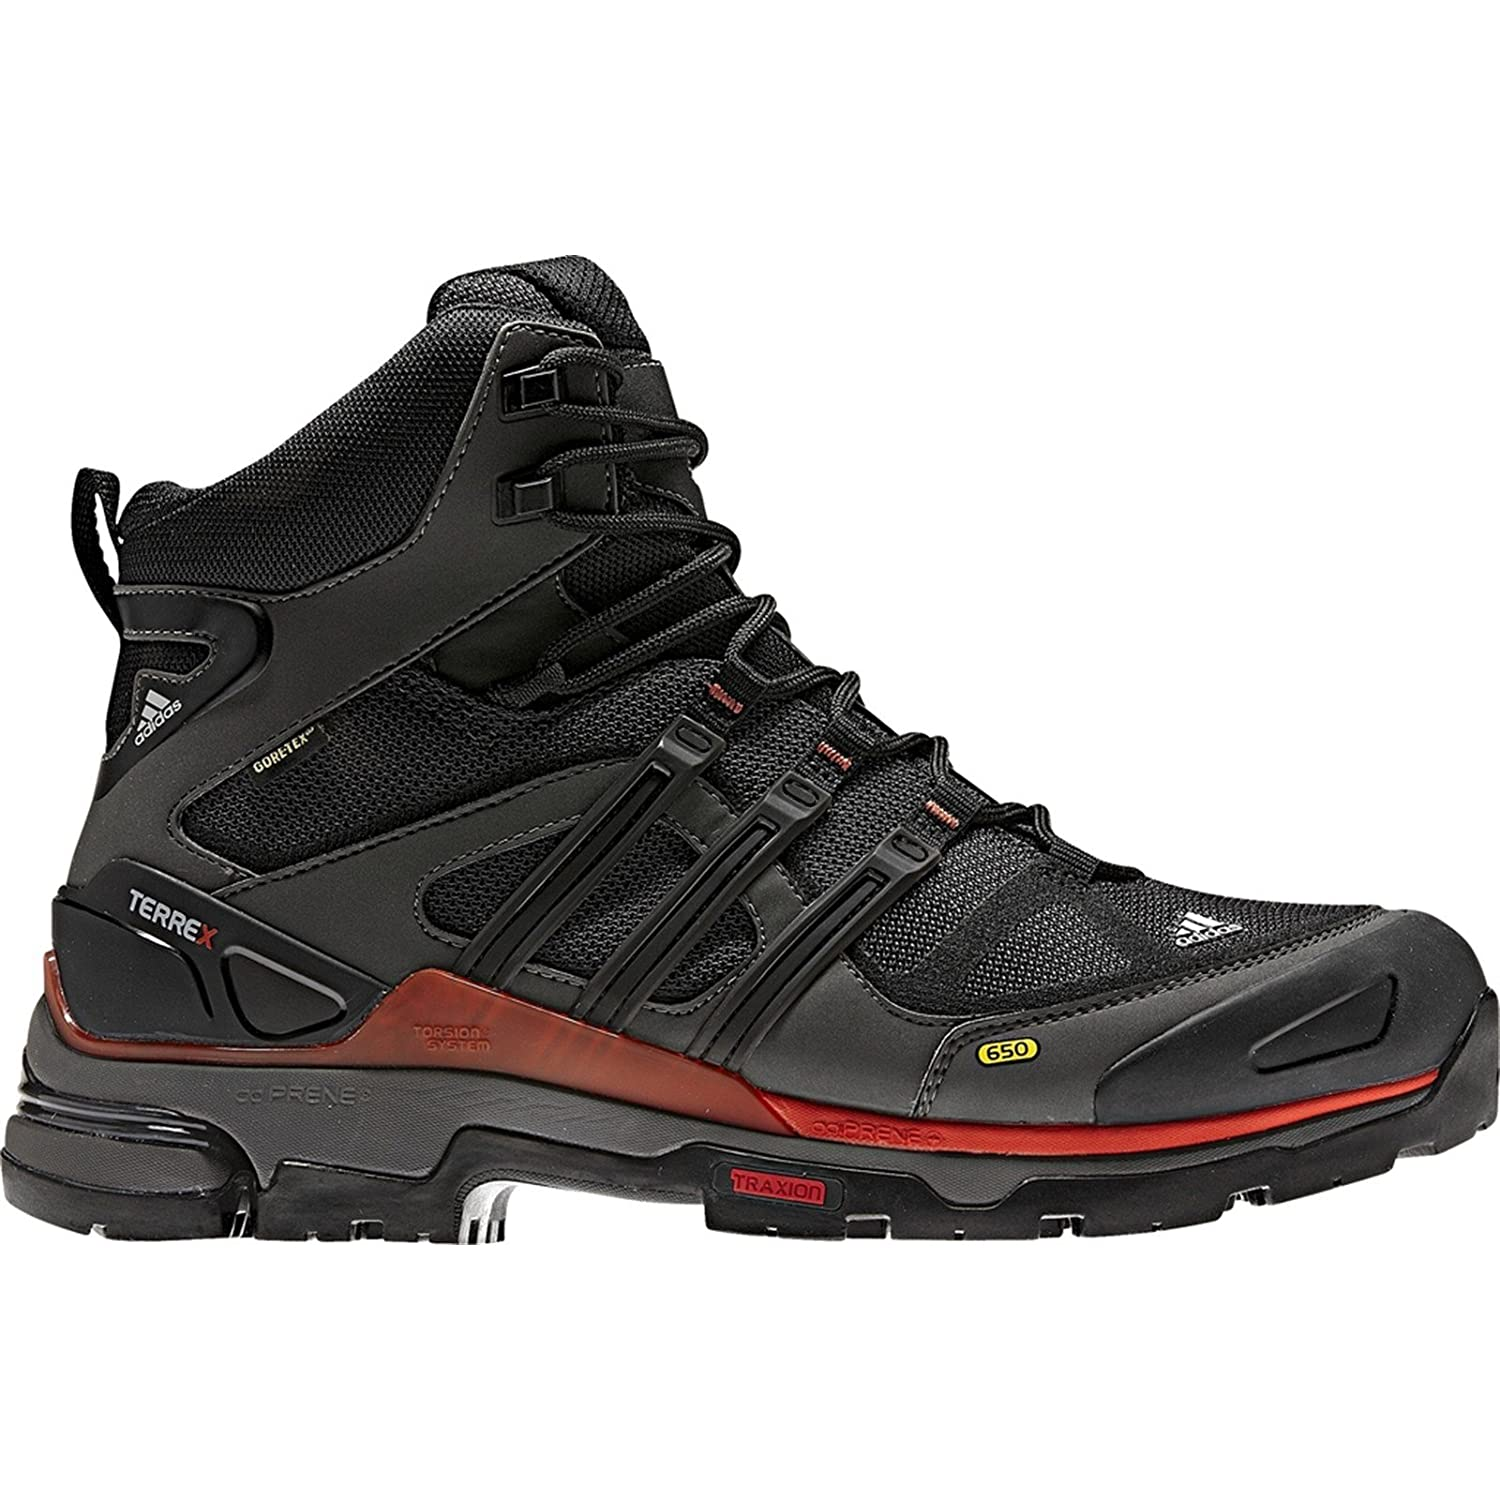 56791f75f1c9 adidas G40606-9.5 Men S Terrex Hike Fm Mid Gtx Shoes Solid Grey 9.5 UK SIZE  8.5  Amazon.co.uk  Shoes   Bags